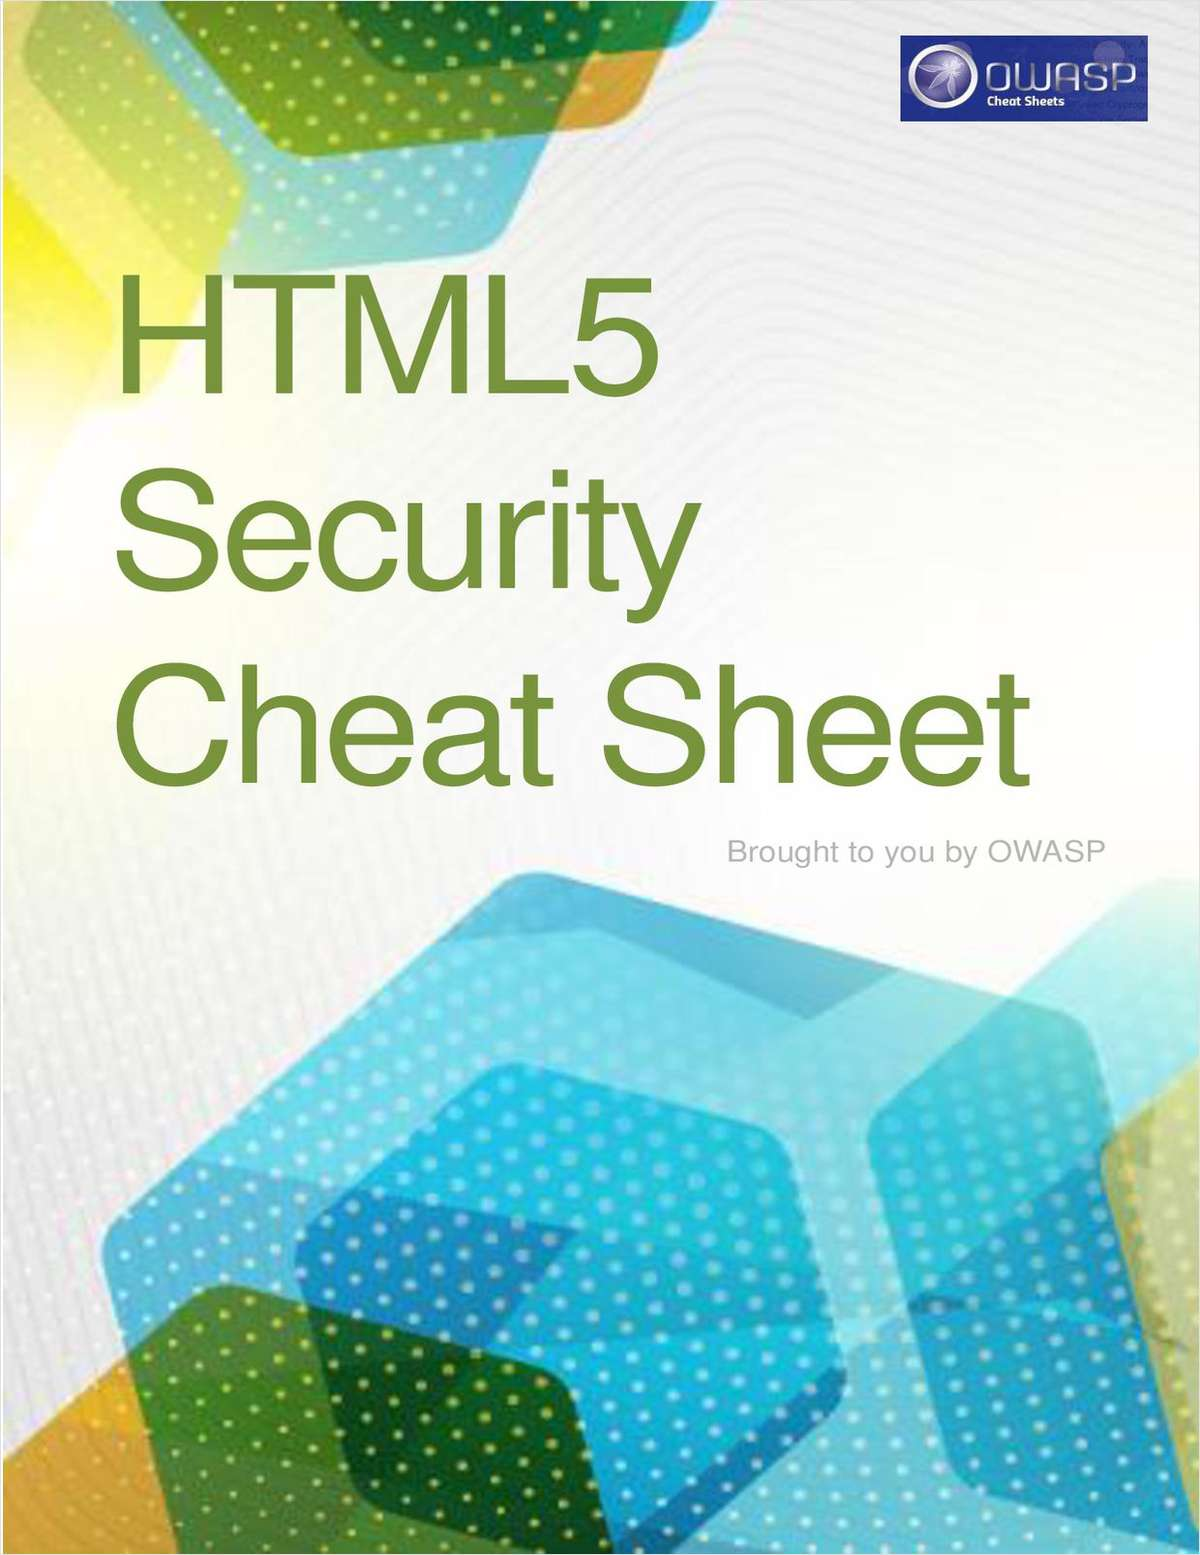 HTML5 Security Cheat Sheet